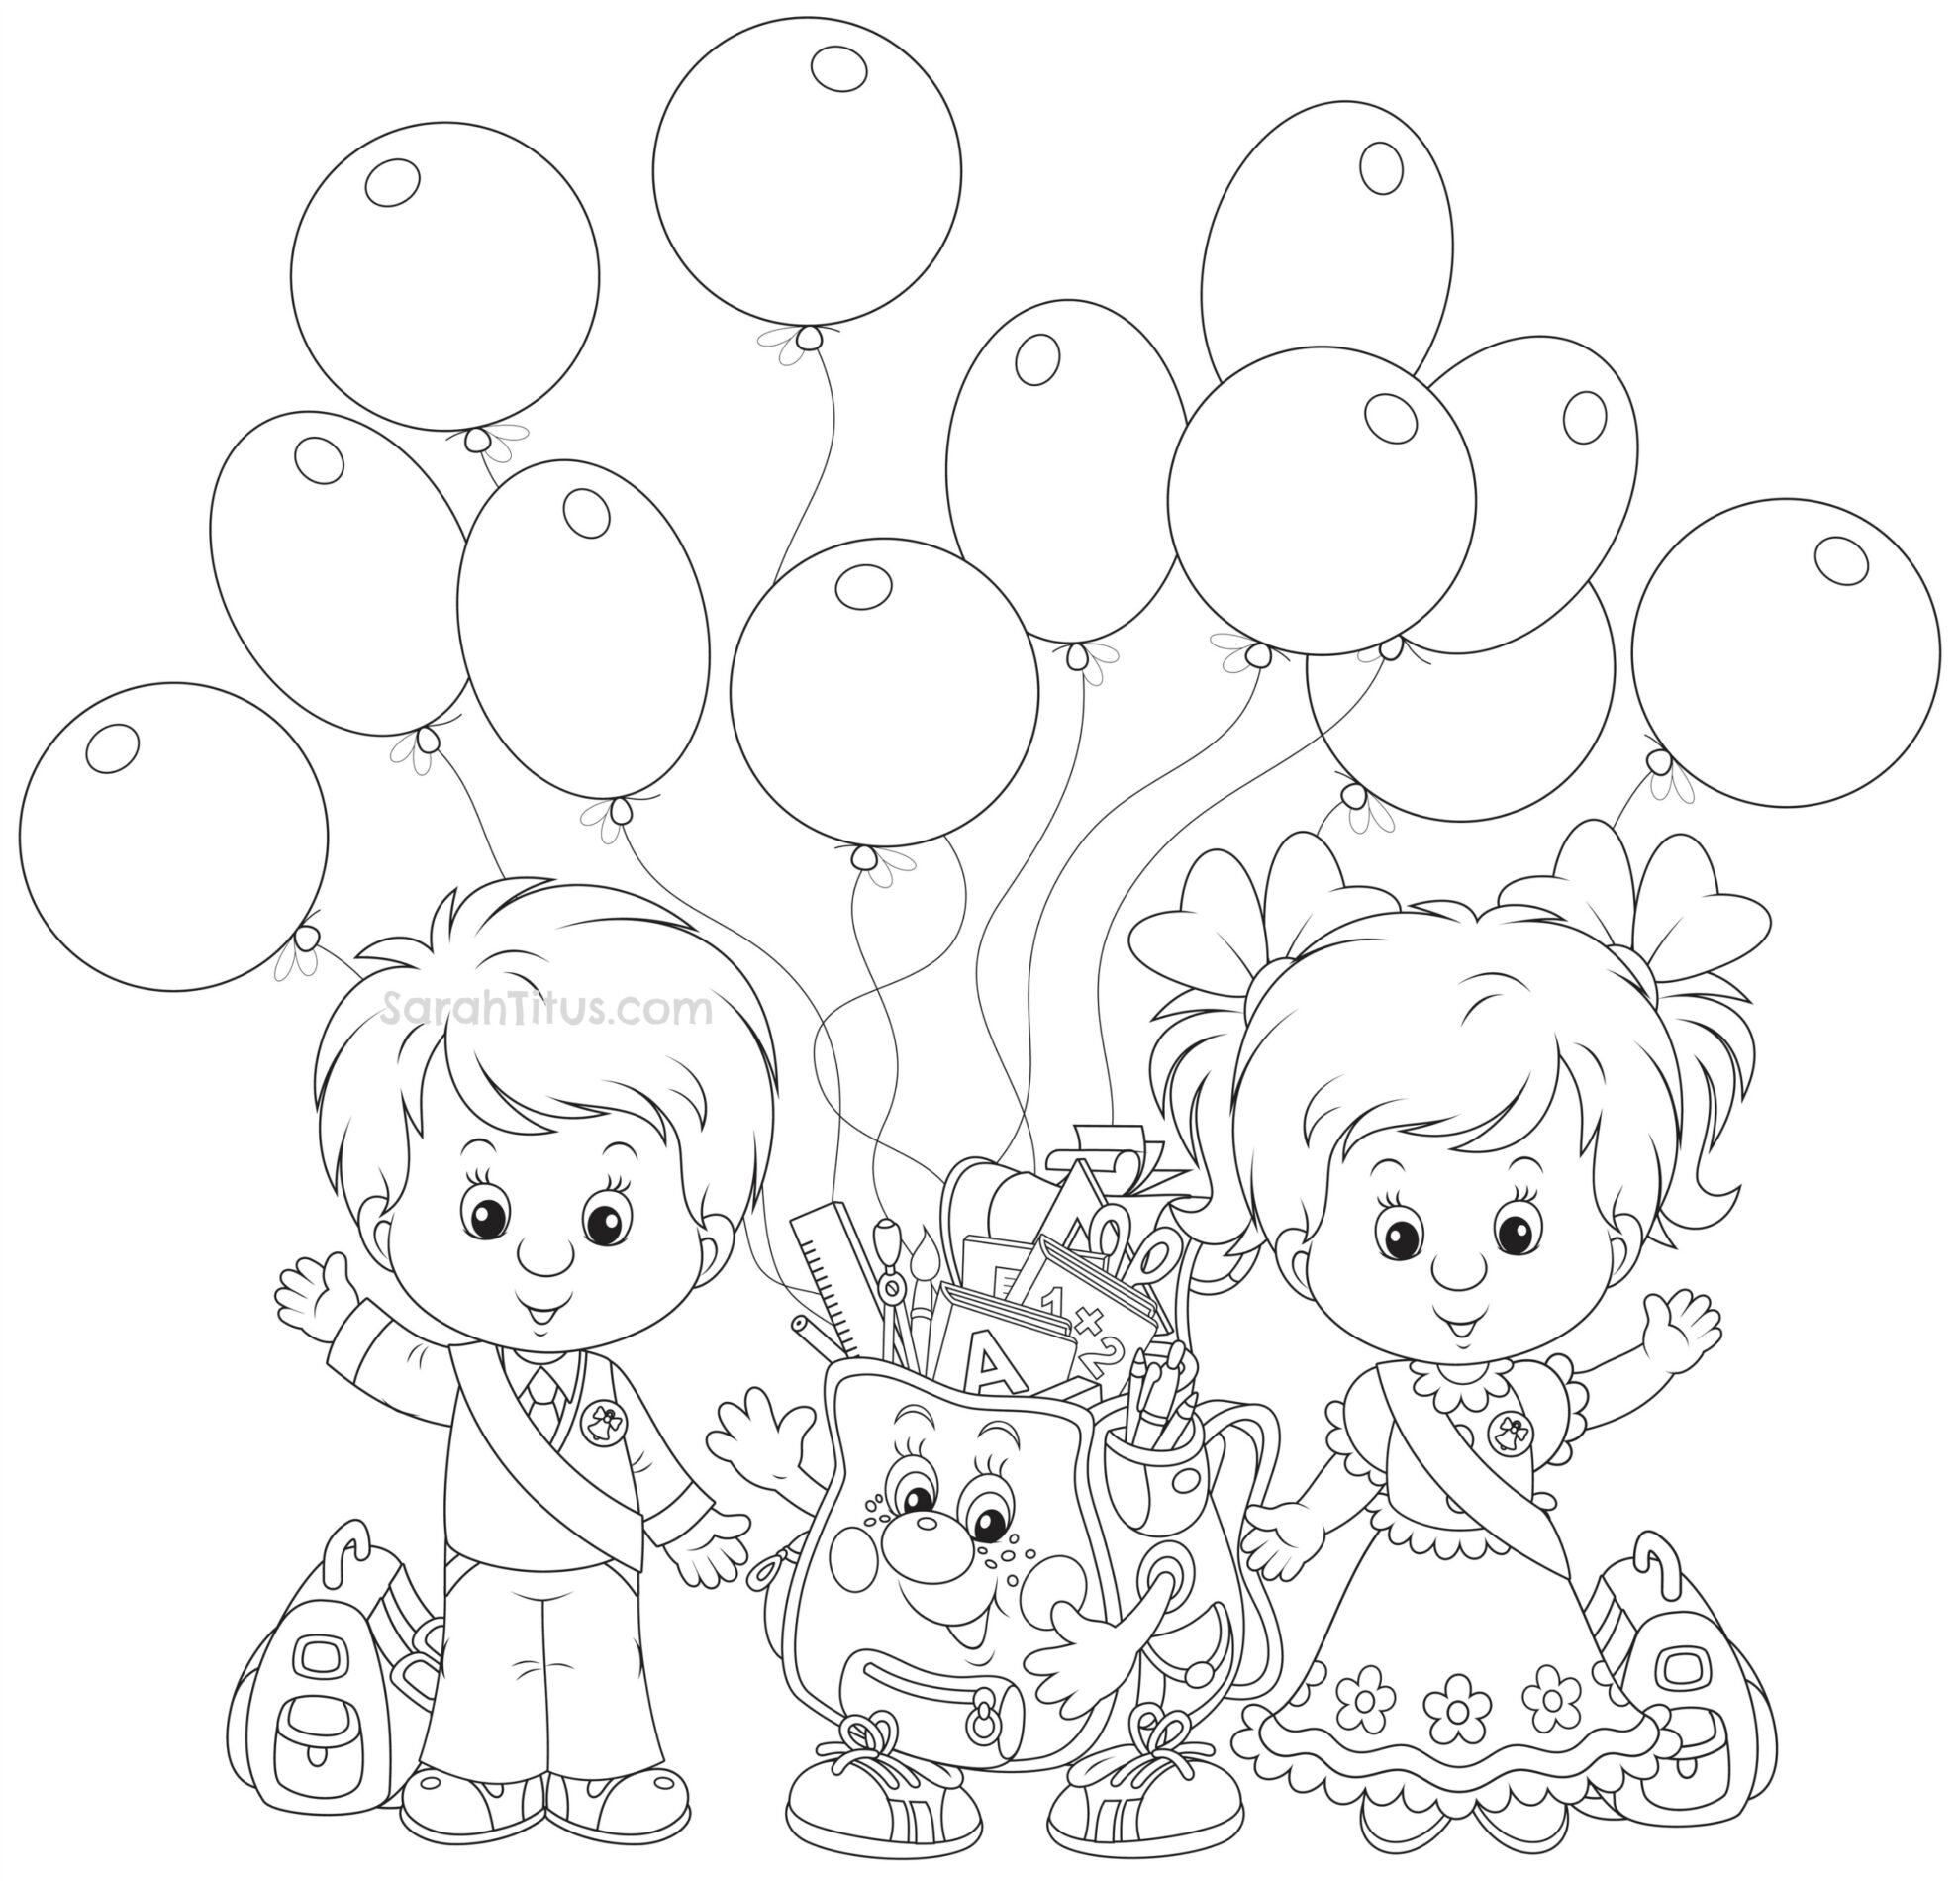 coloring picture kindergarten back to school coloring pages sarah titus coloring picture kindergarten